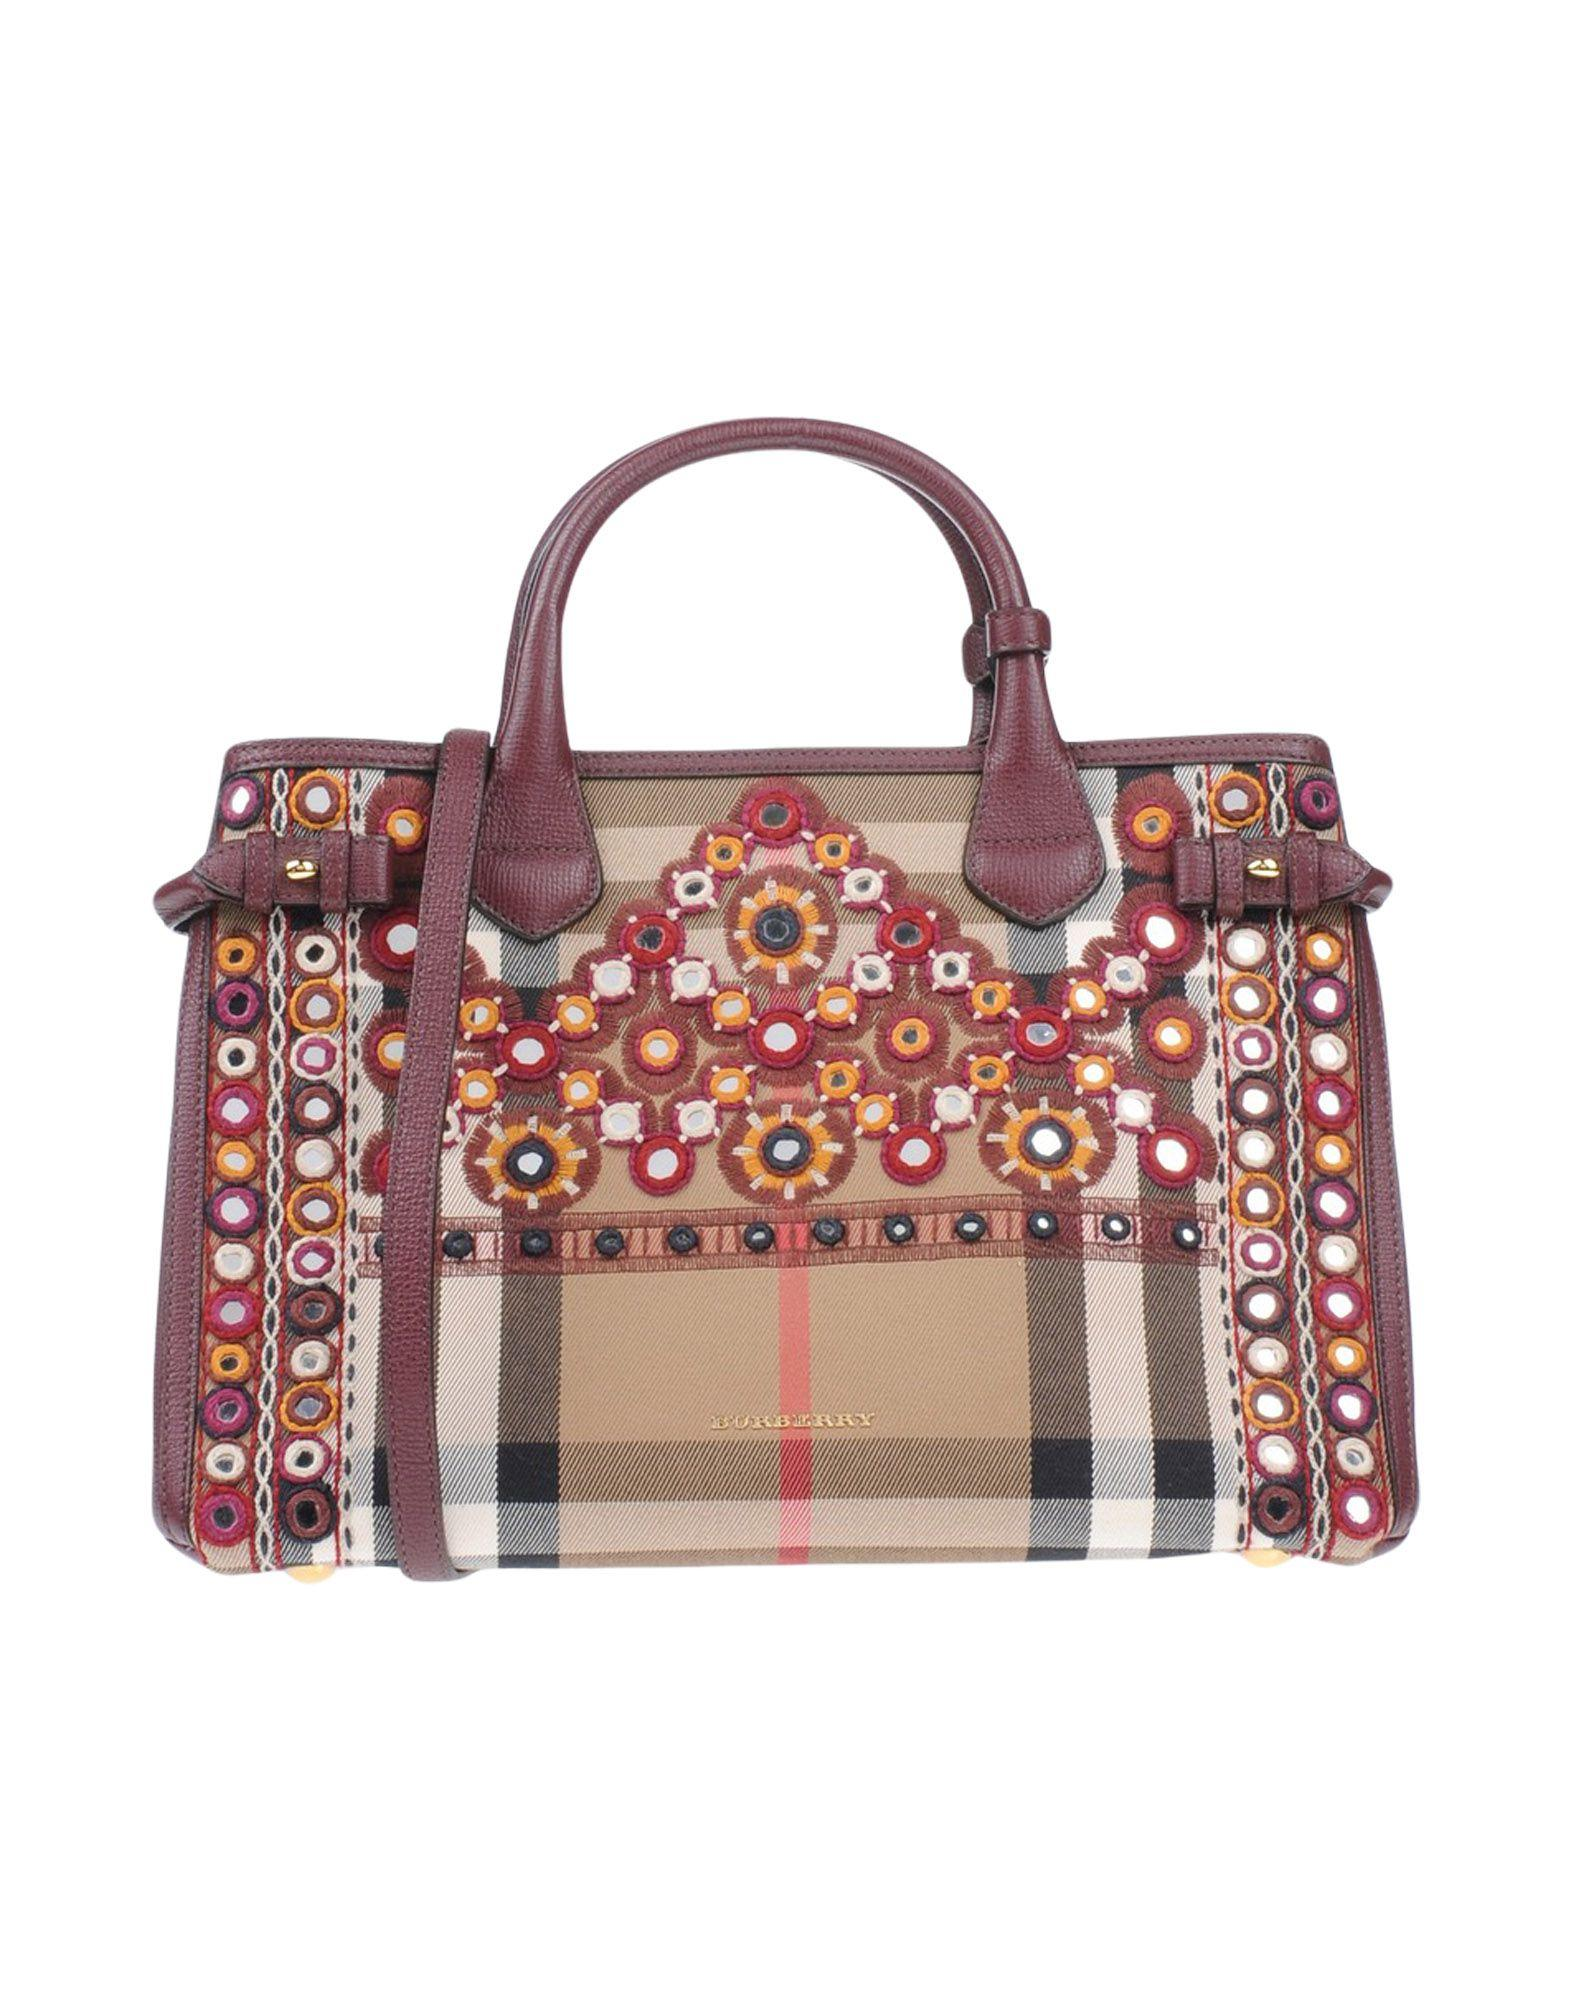 Burberry Handbags In Maroon